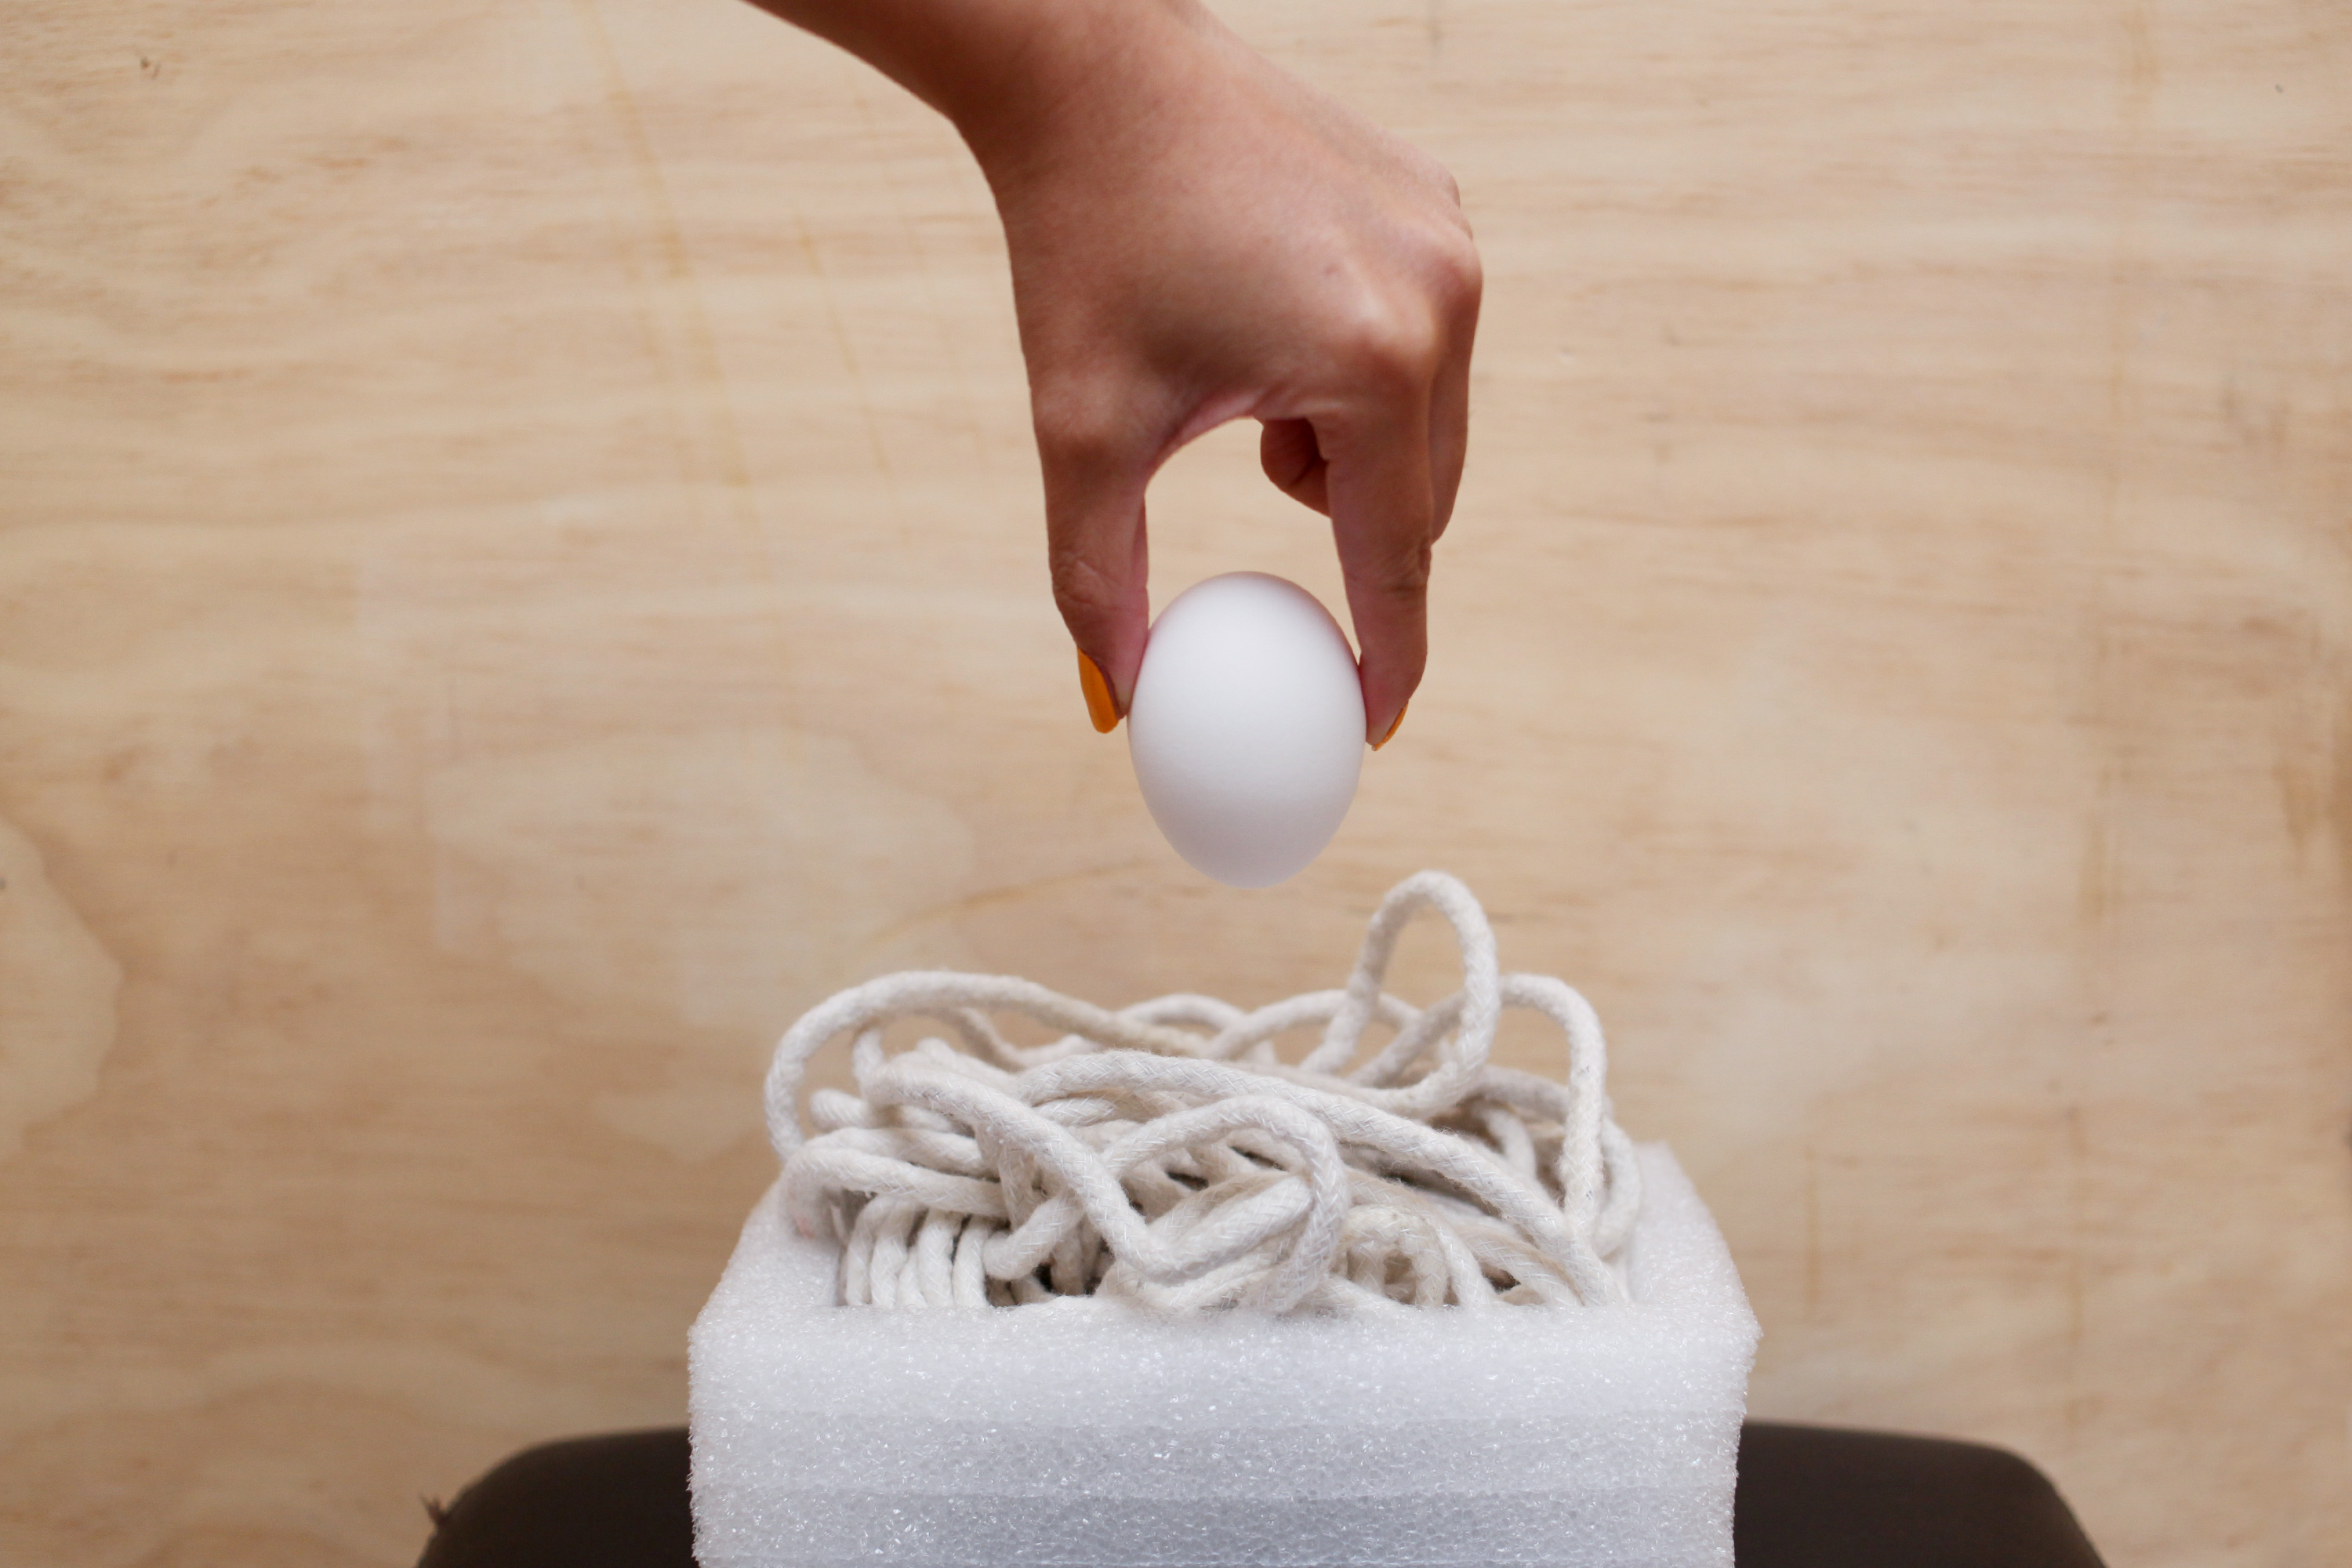 The Science Behind the Egg Drop Experiment